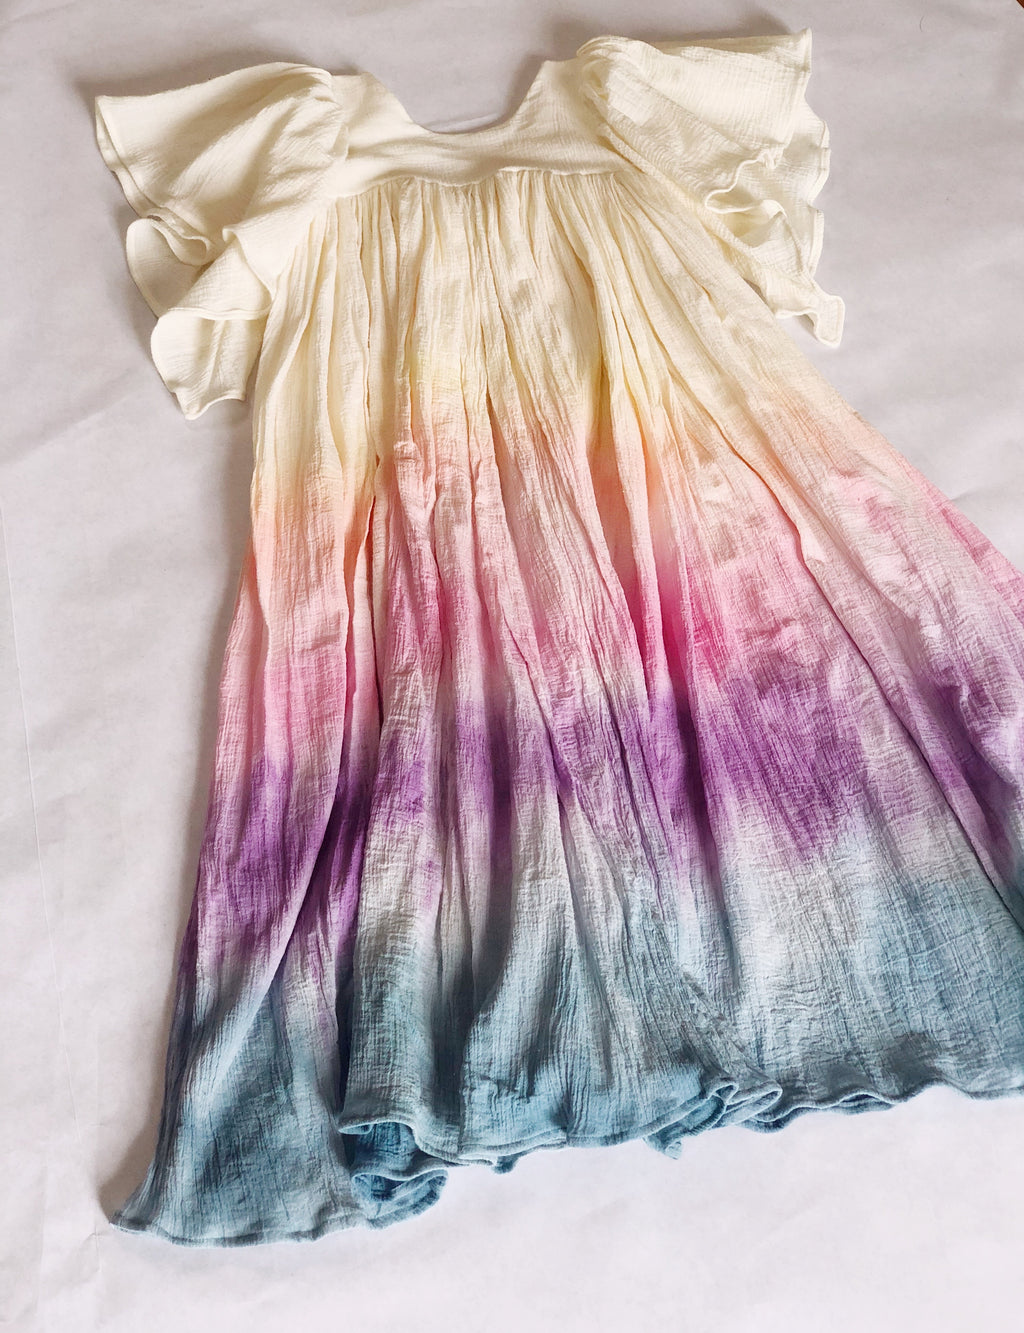 FLUTTER-BY TIE DYE DRESS (PREORDER)